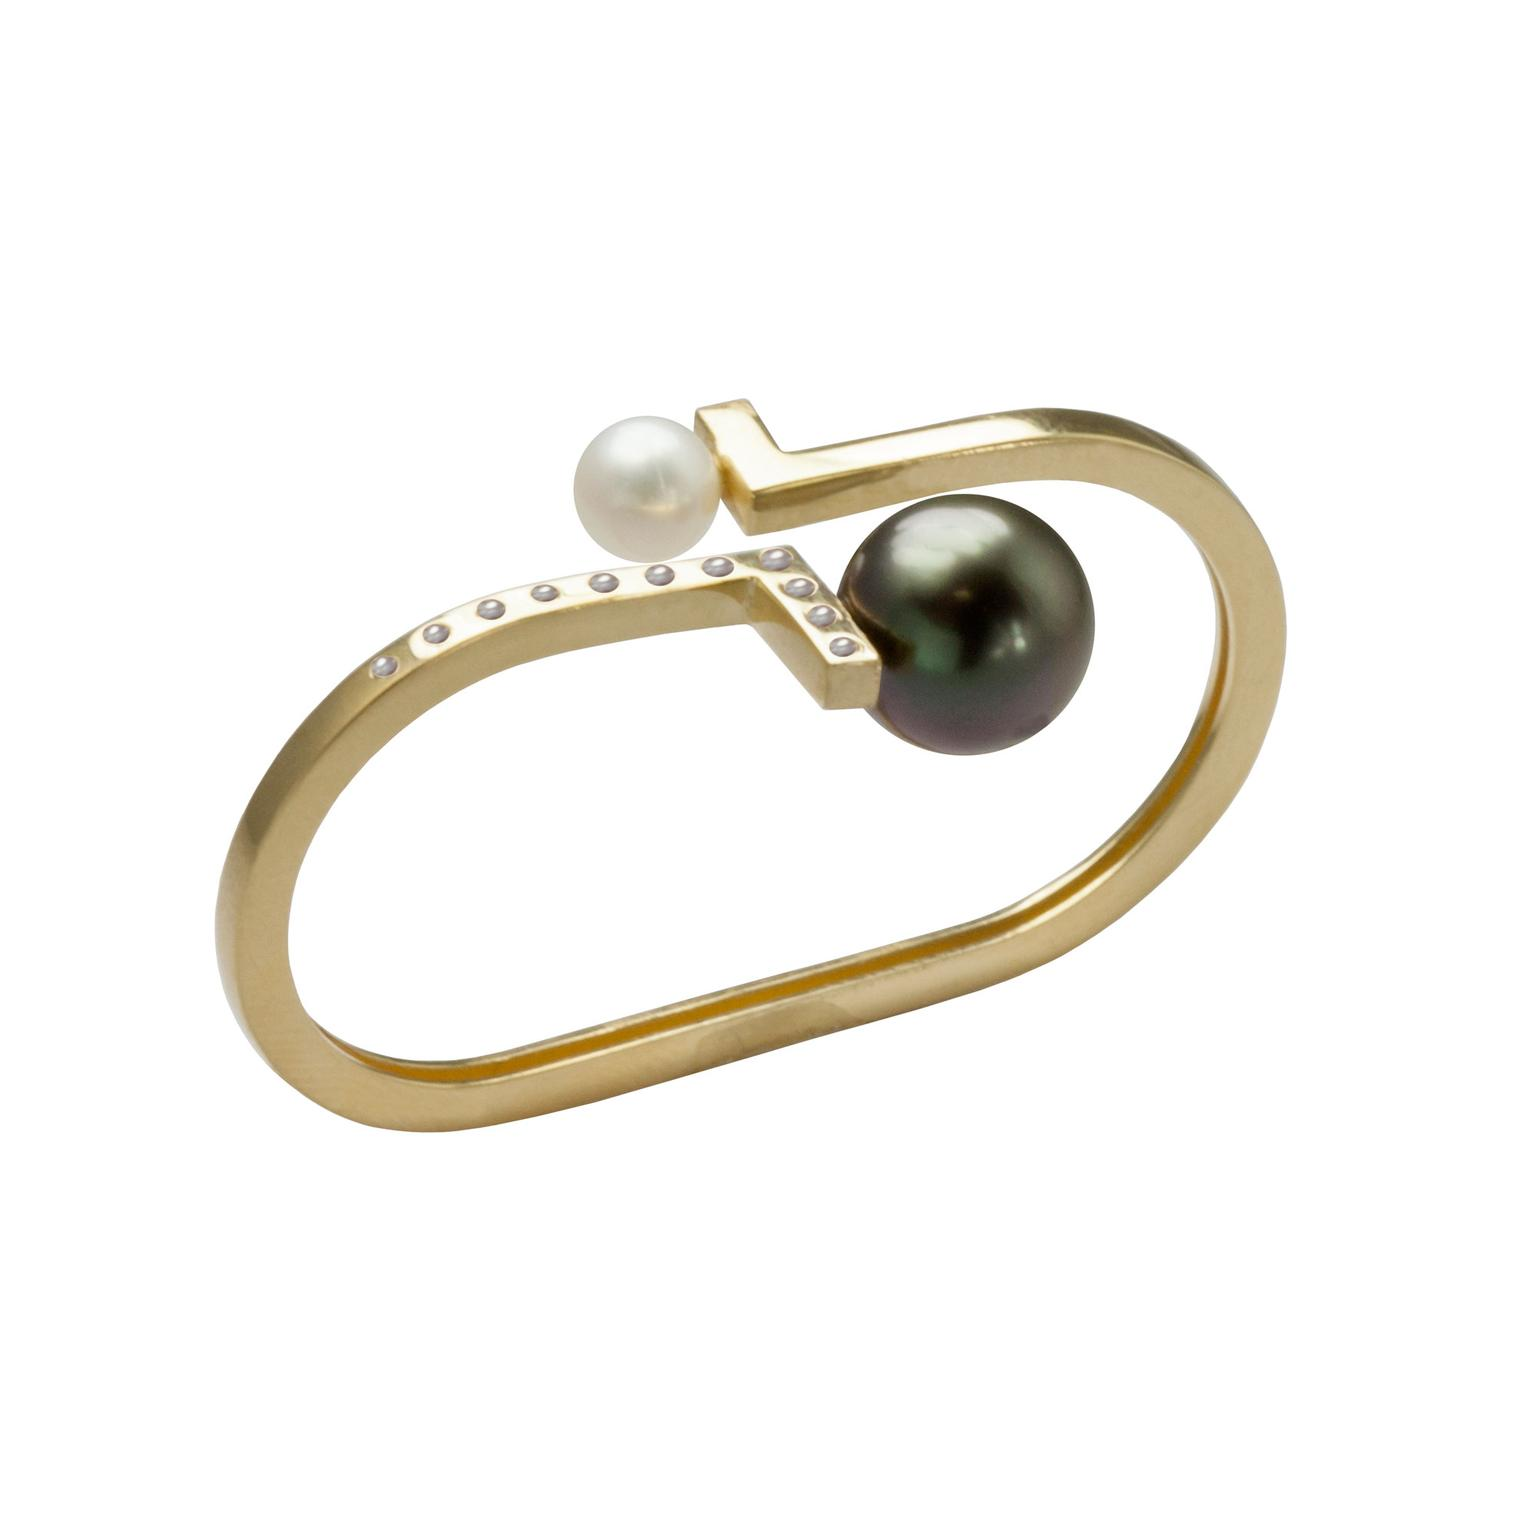 Kattri Double Asymmetry ring with black and white pearls